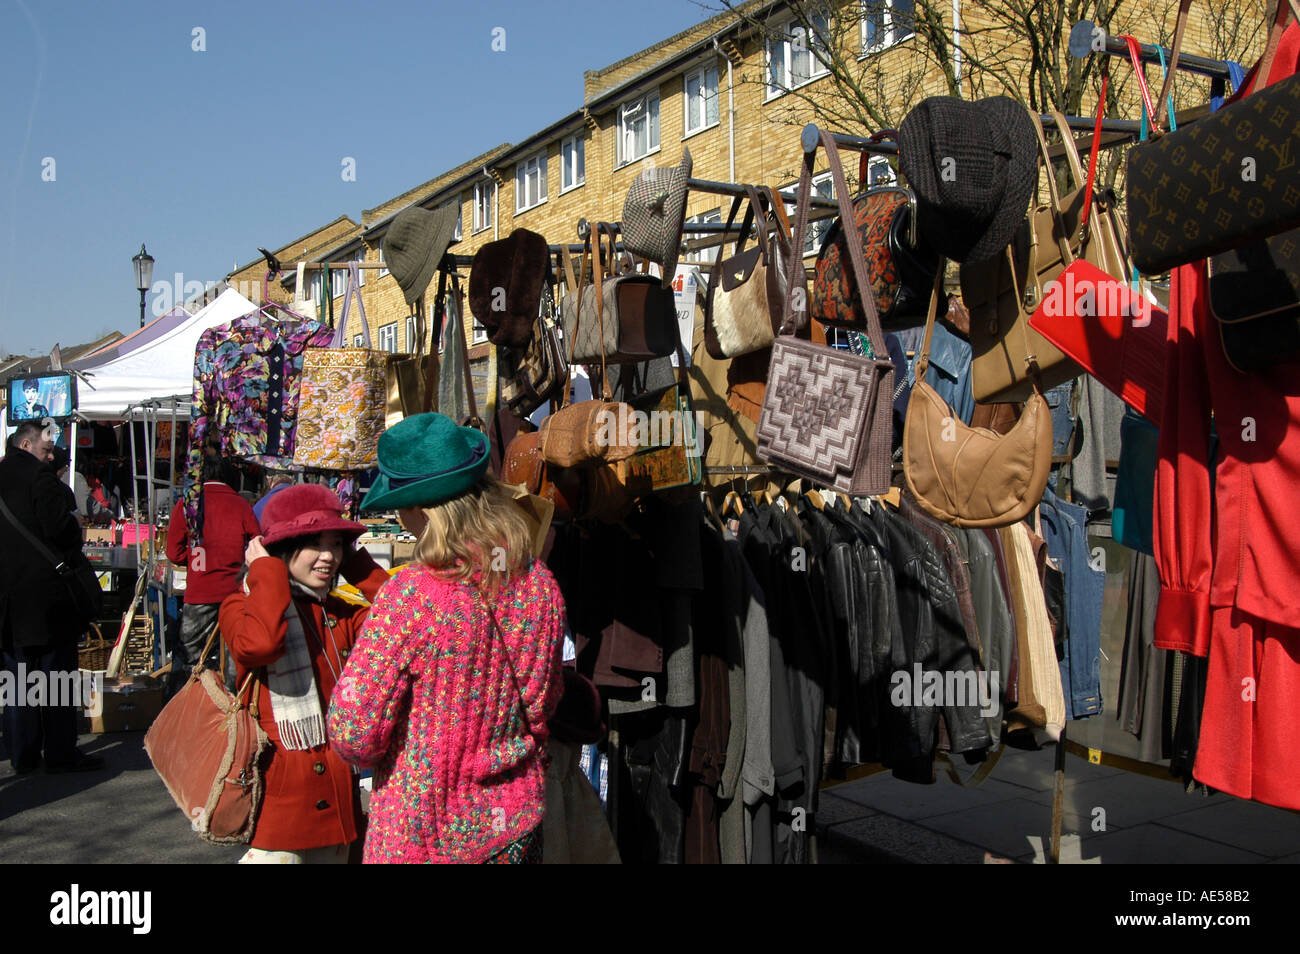 Hats and bags for sale on market stall on Portobello Road market, Notting Hill, London, England, UK Stock Photo